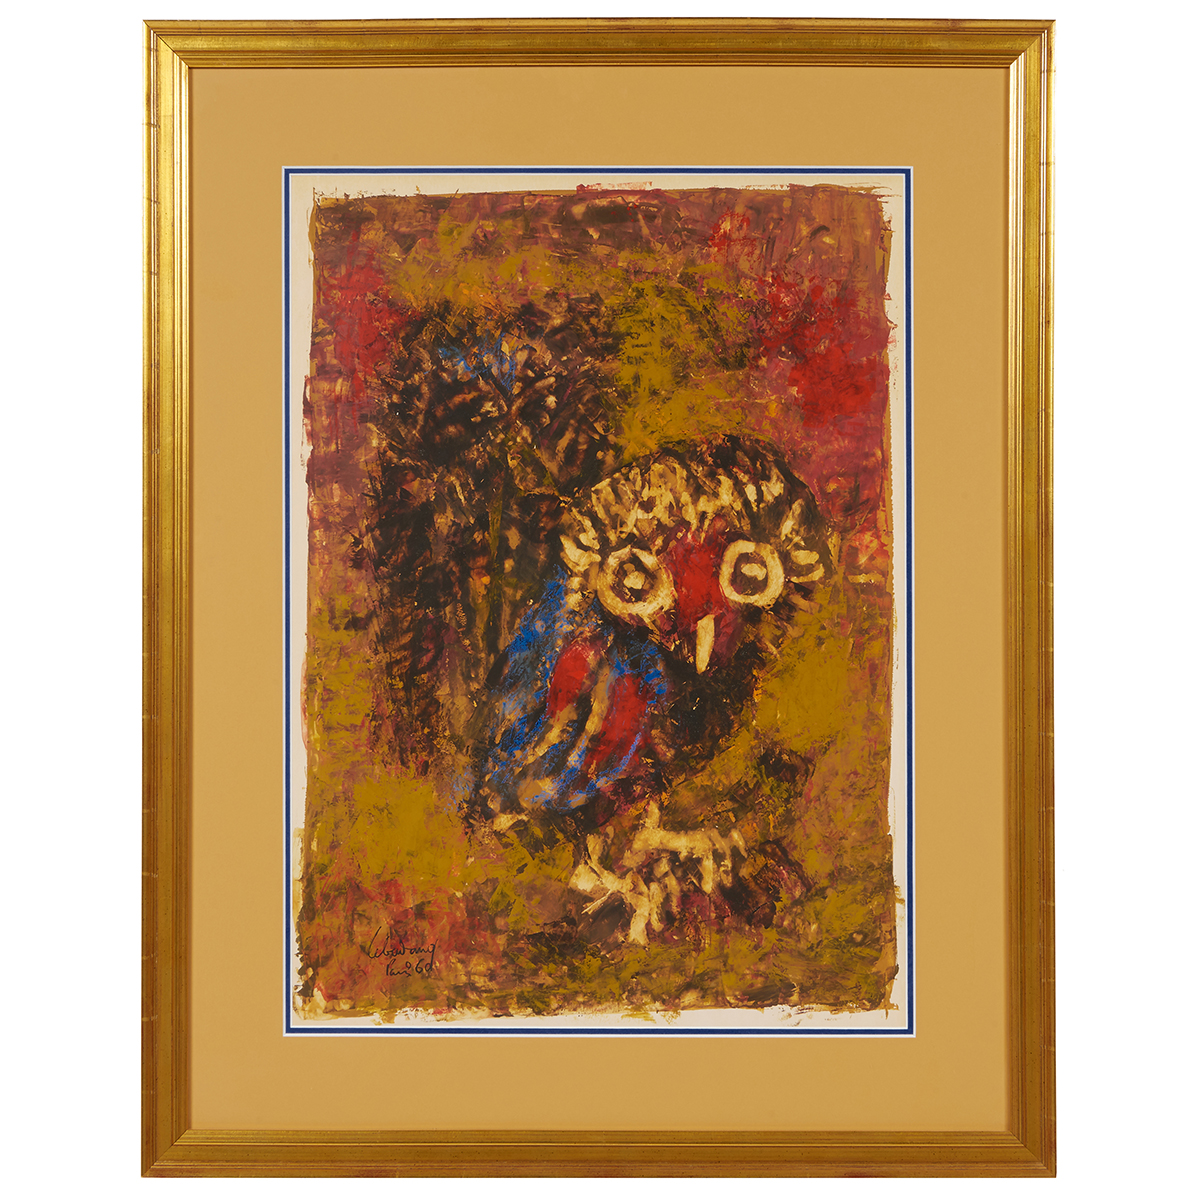 "Lebadang, (Vietnamese/French, 1922-2015), Owl, 1960, mixed media on paper, 22 1/2"" x 16 1/4"""